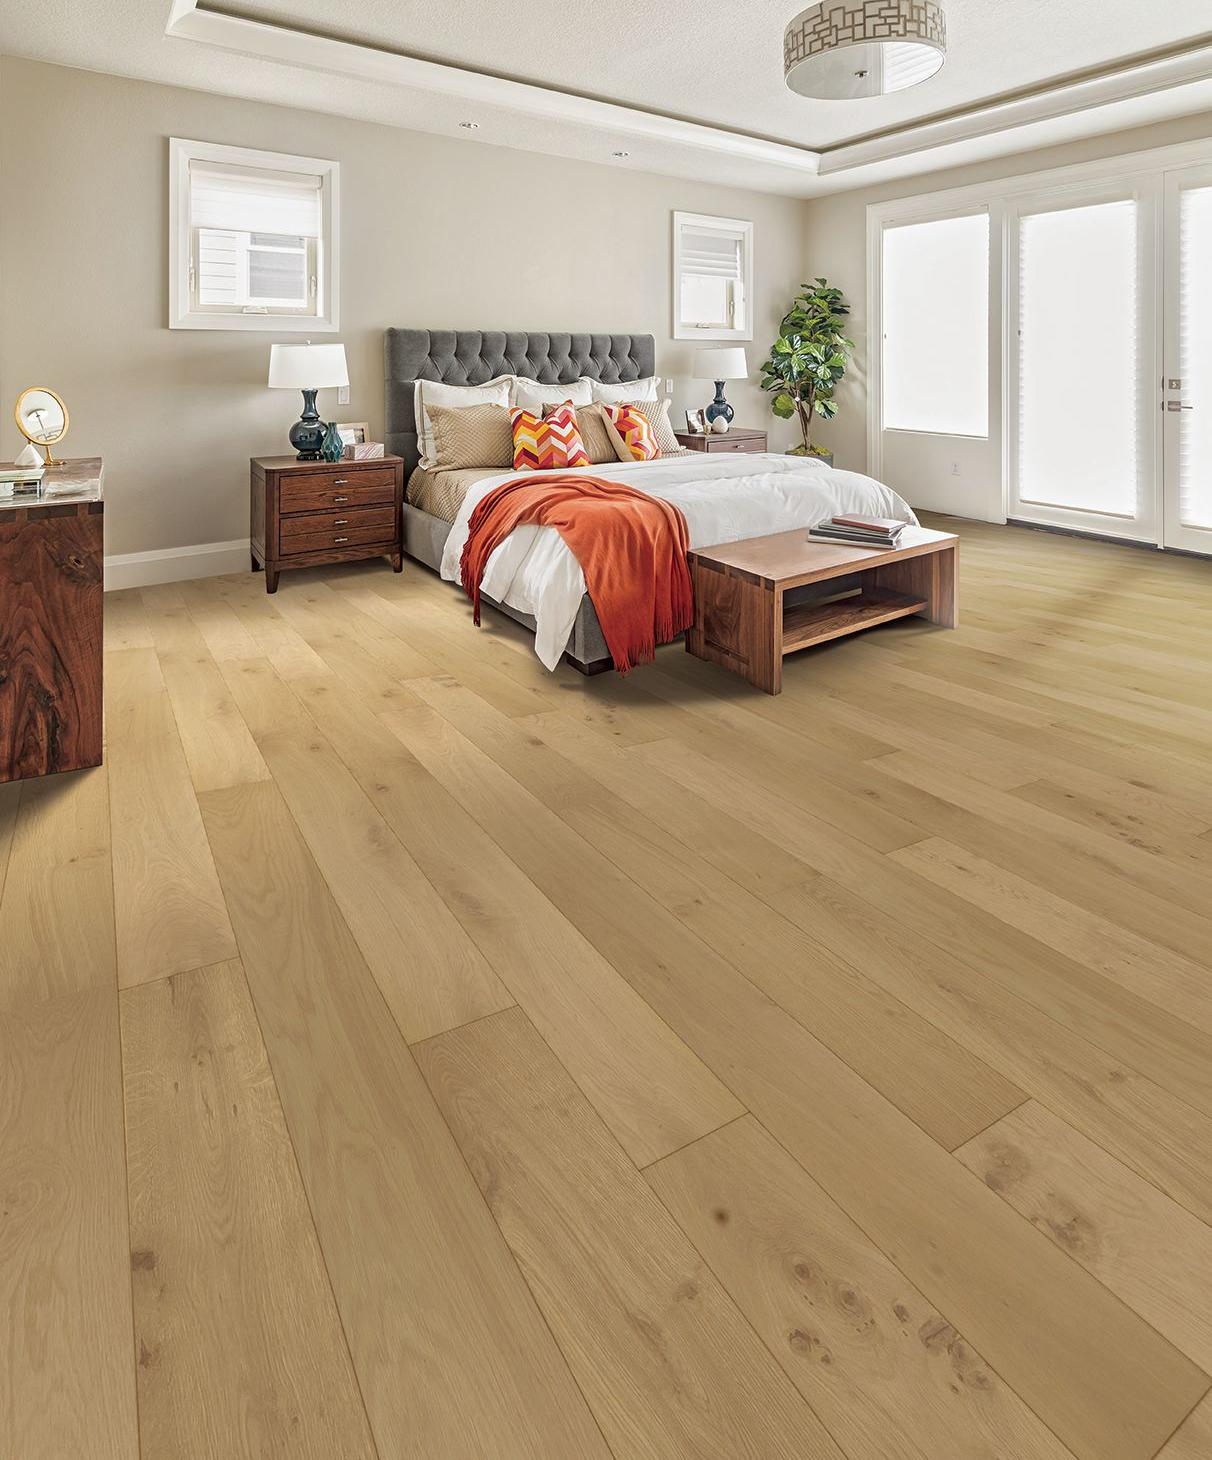 Tuscan Grande White Smoked Oak Flat Sanded & UV Oiled TF311 Engineered Wood Flooring